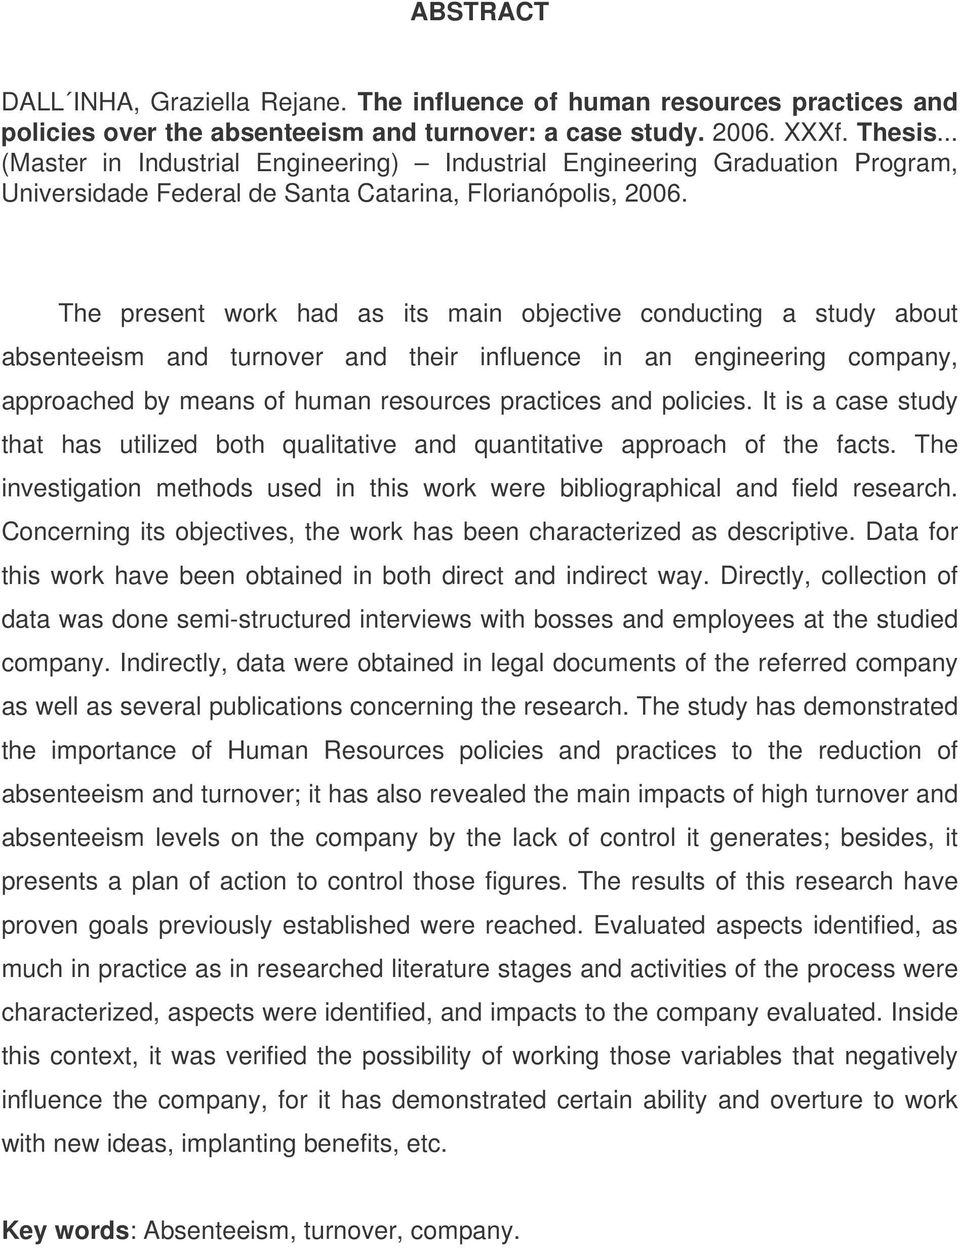 The present work had as its main objective conducting a study about absenteeism and turnover and their influence in an engineering company, approached by means of human resources practices and